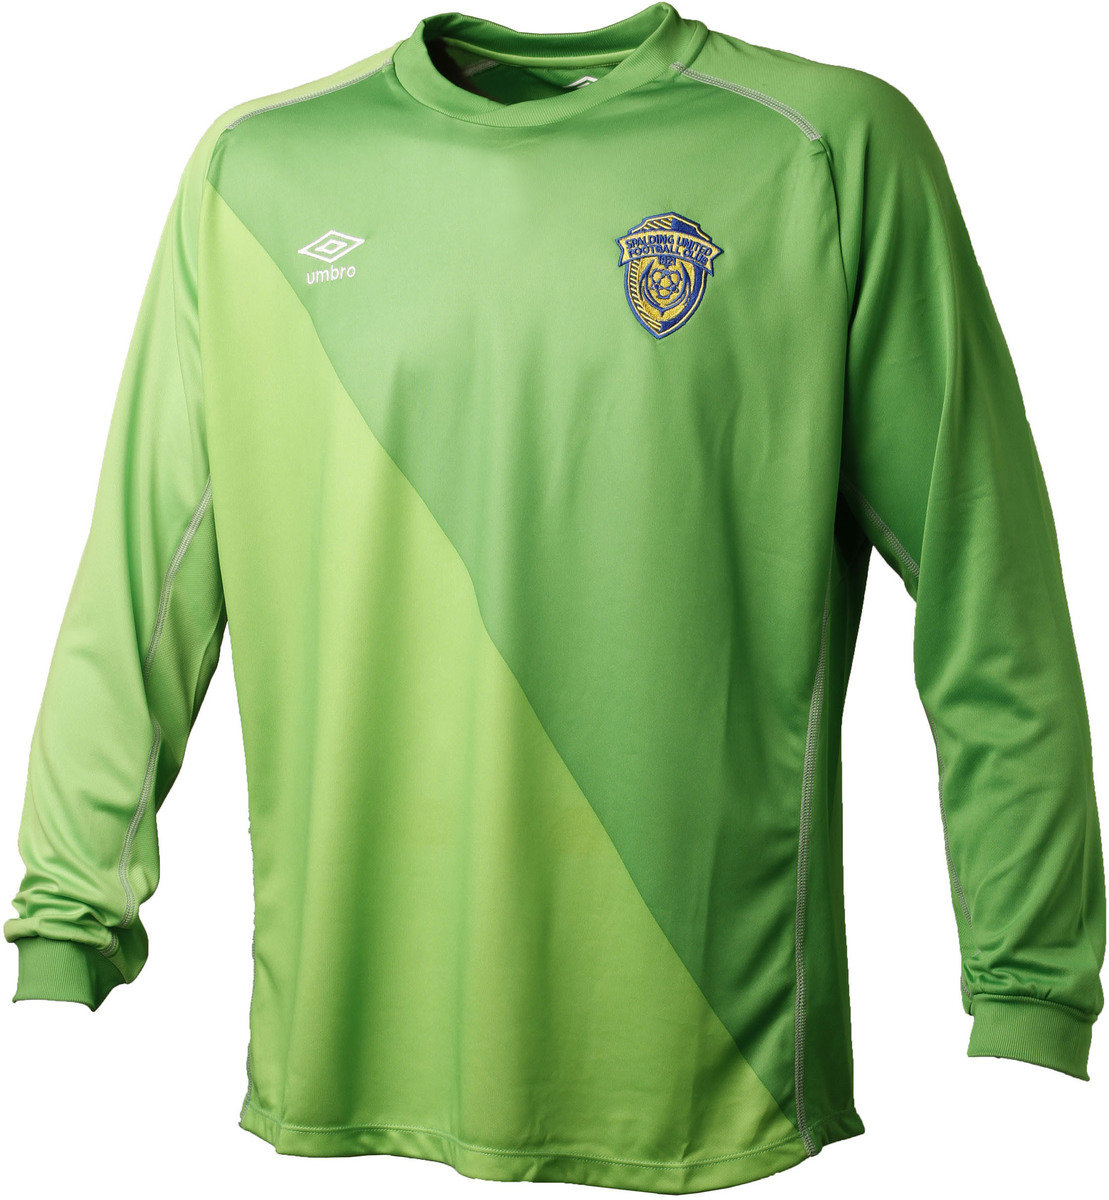 SPALDING UTD 16/17 JUNIOR GOALKEEPER SHIRT